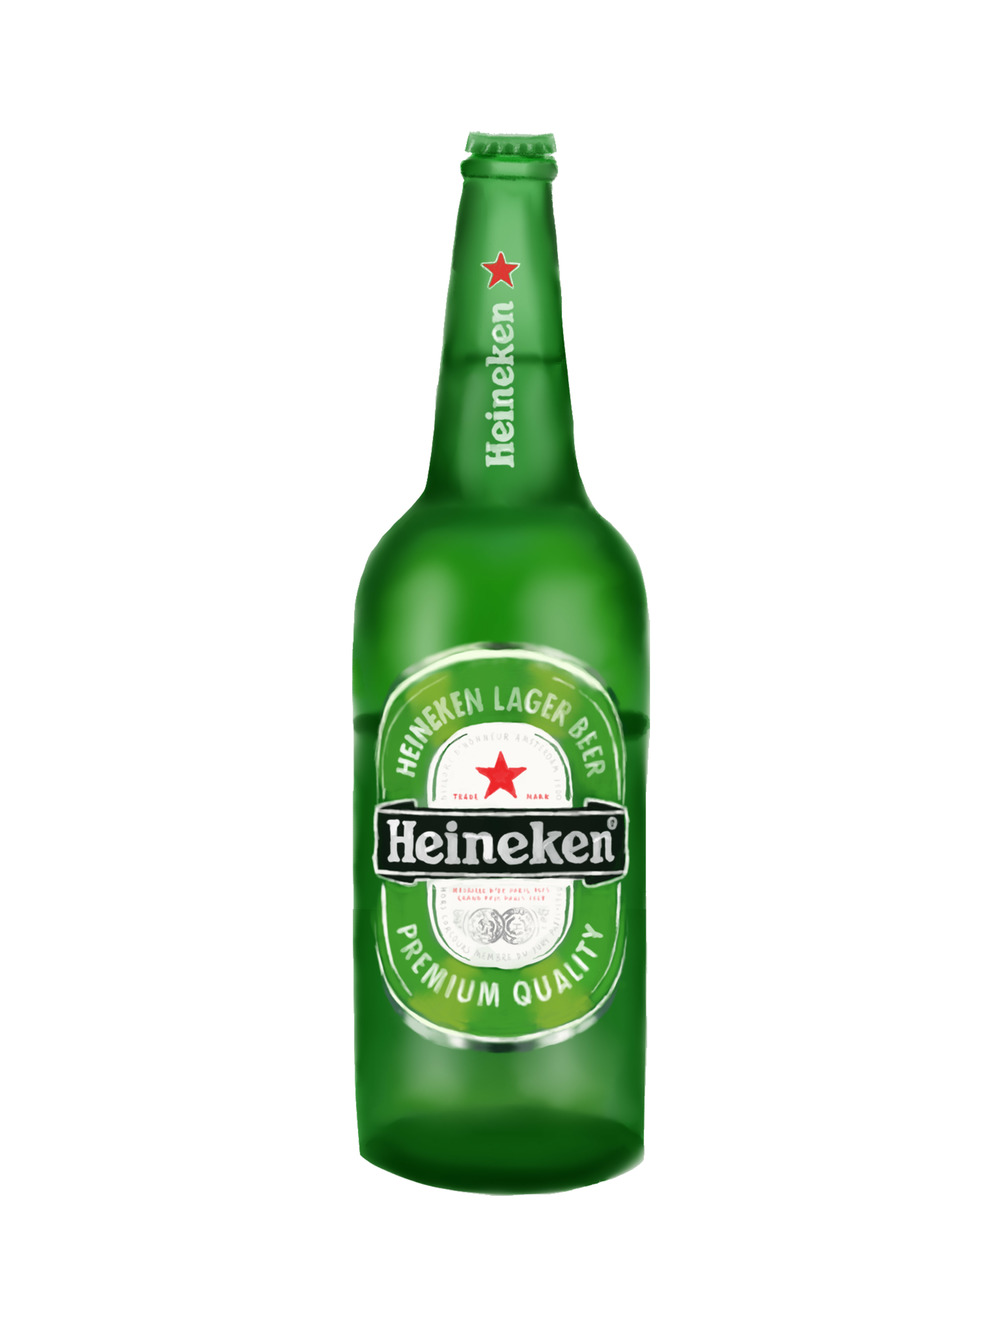 Heineken-Bottle.jpg